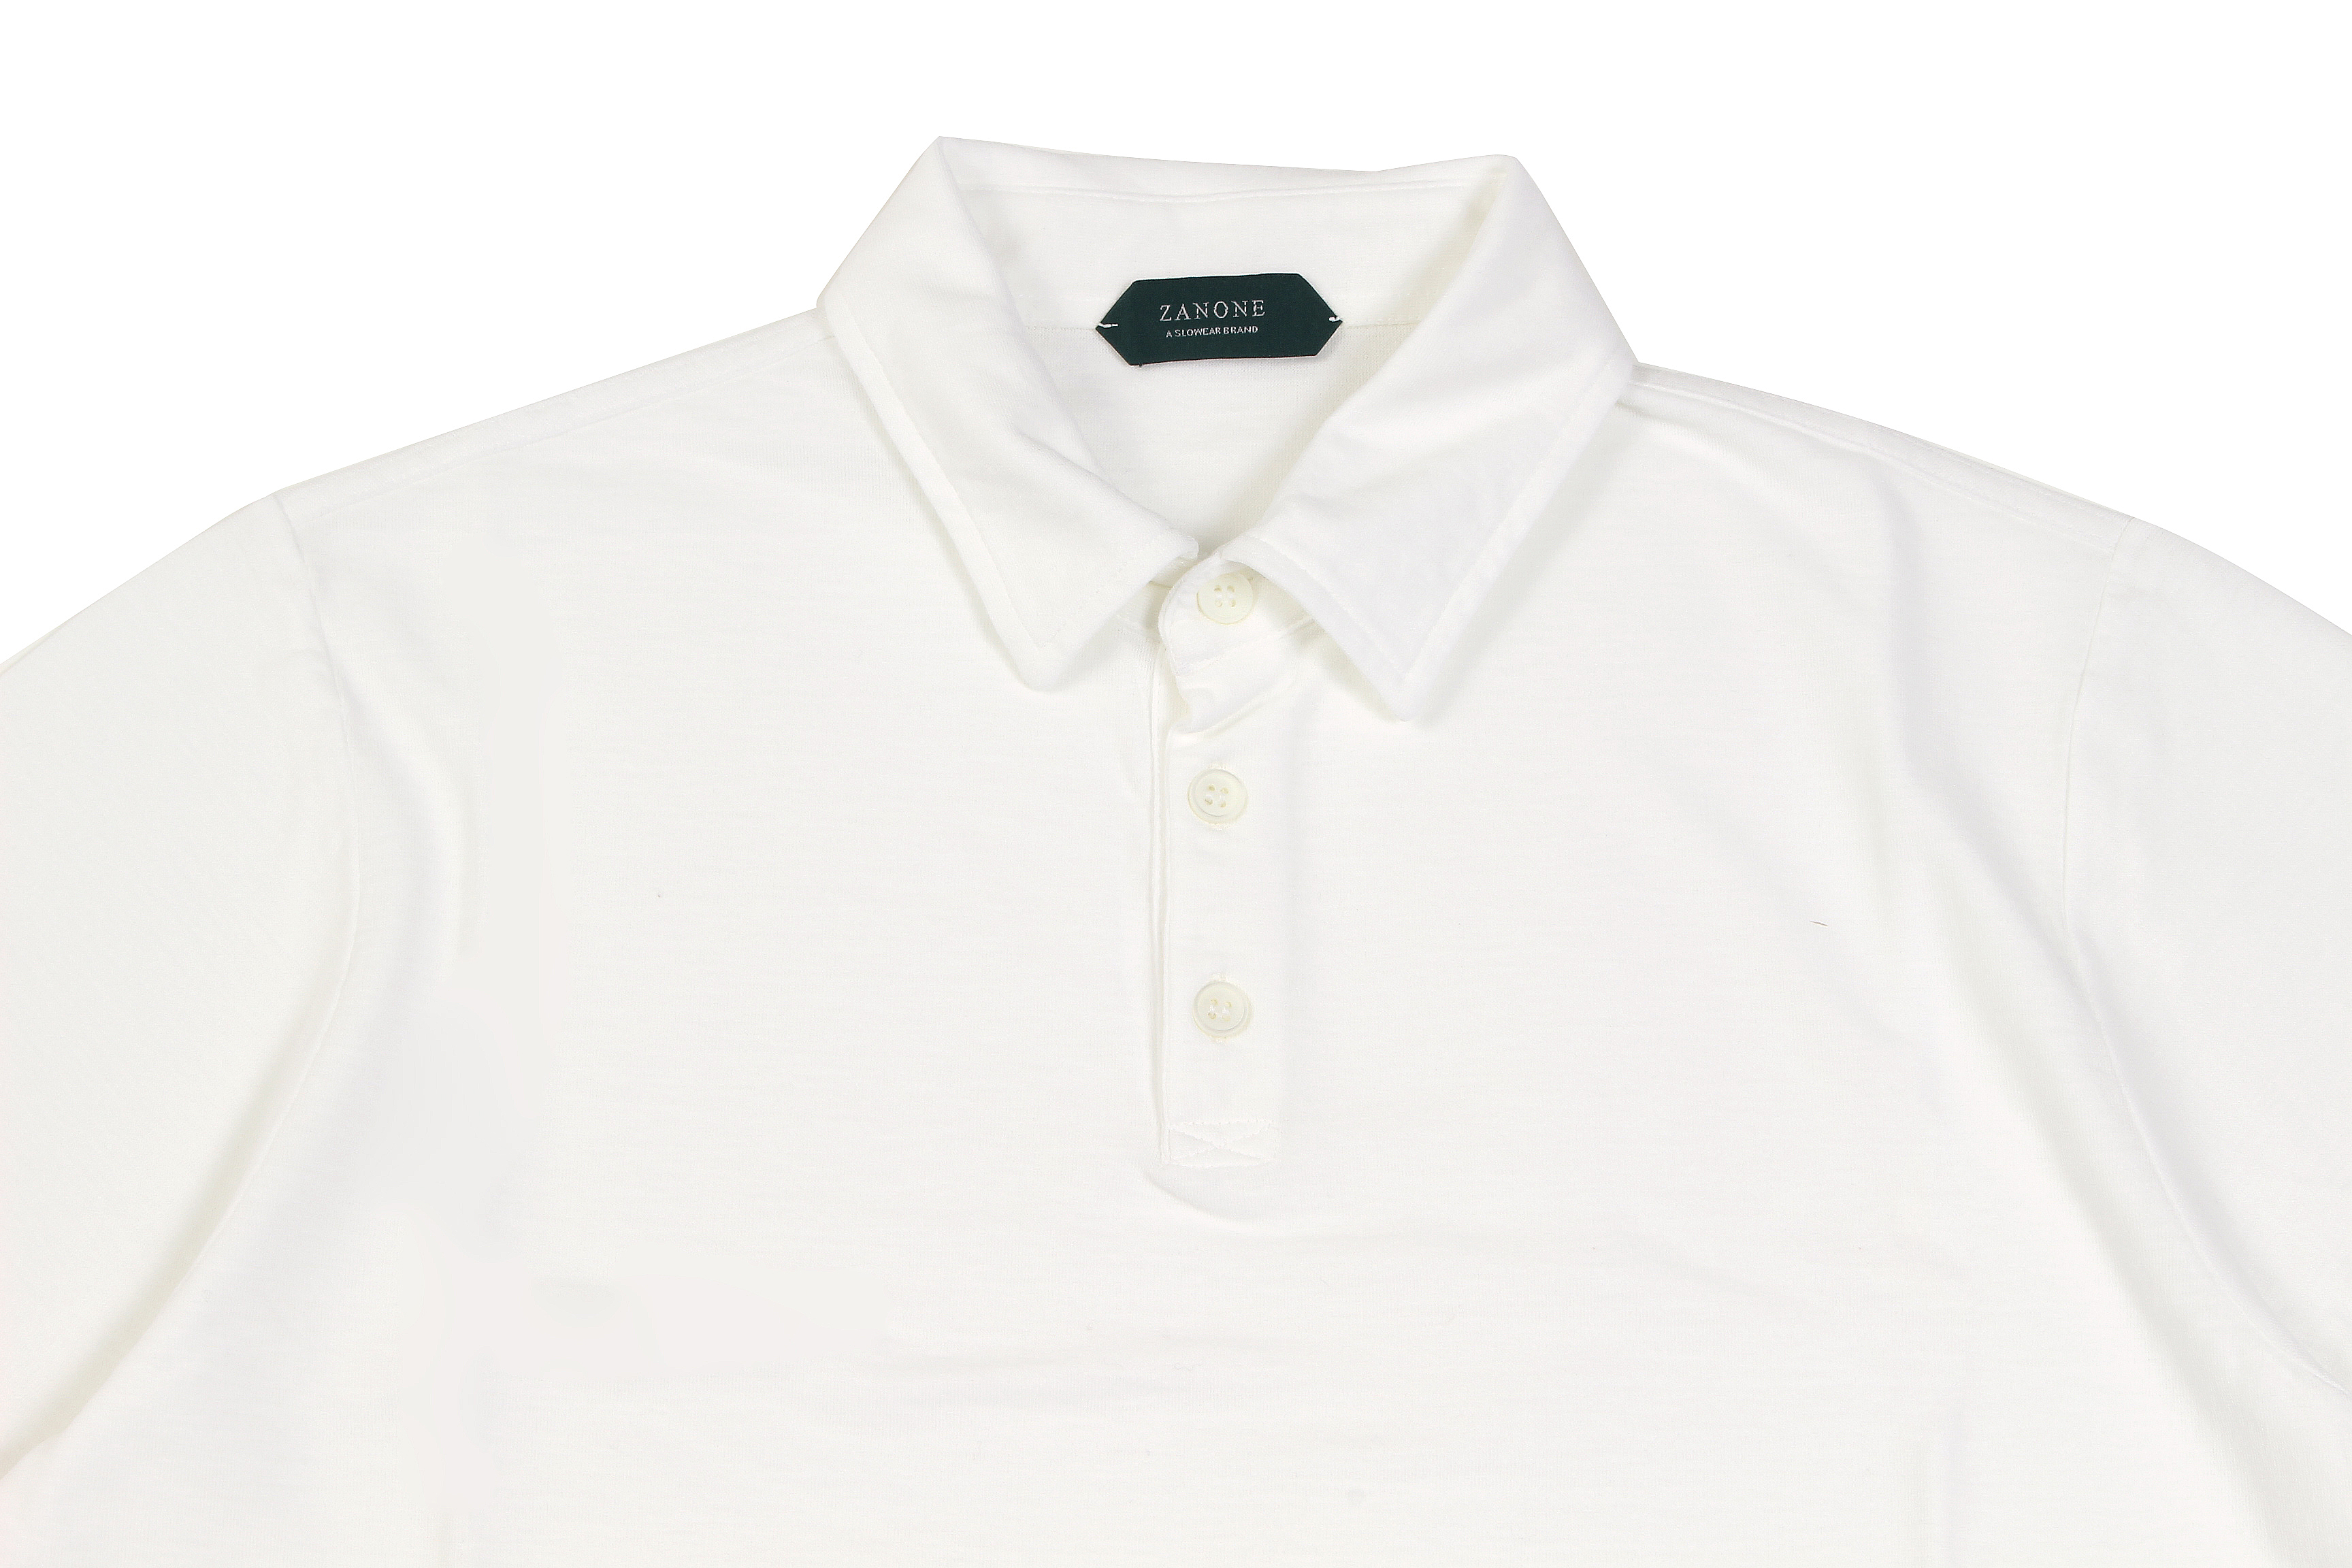 ZANONE(ザノーネ) Polo Shirt ice cotton アイスコットン ポロシャツ WHITE (ホワイト・Z0001) made in italy (イタリア製) 2020春夏新作 愛知 名古屋 altoediritto アルトエデリット